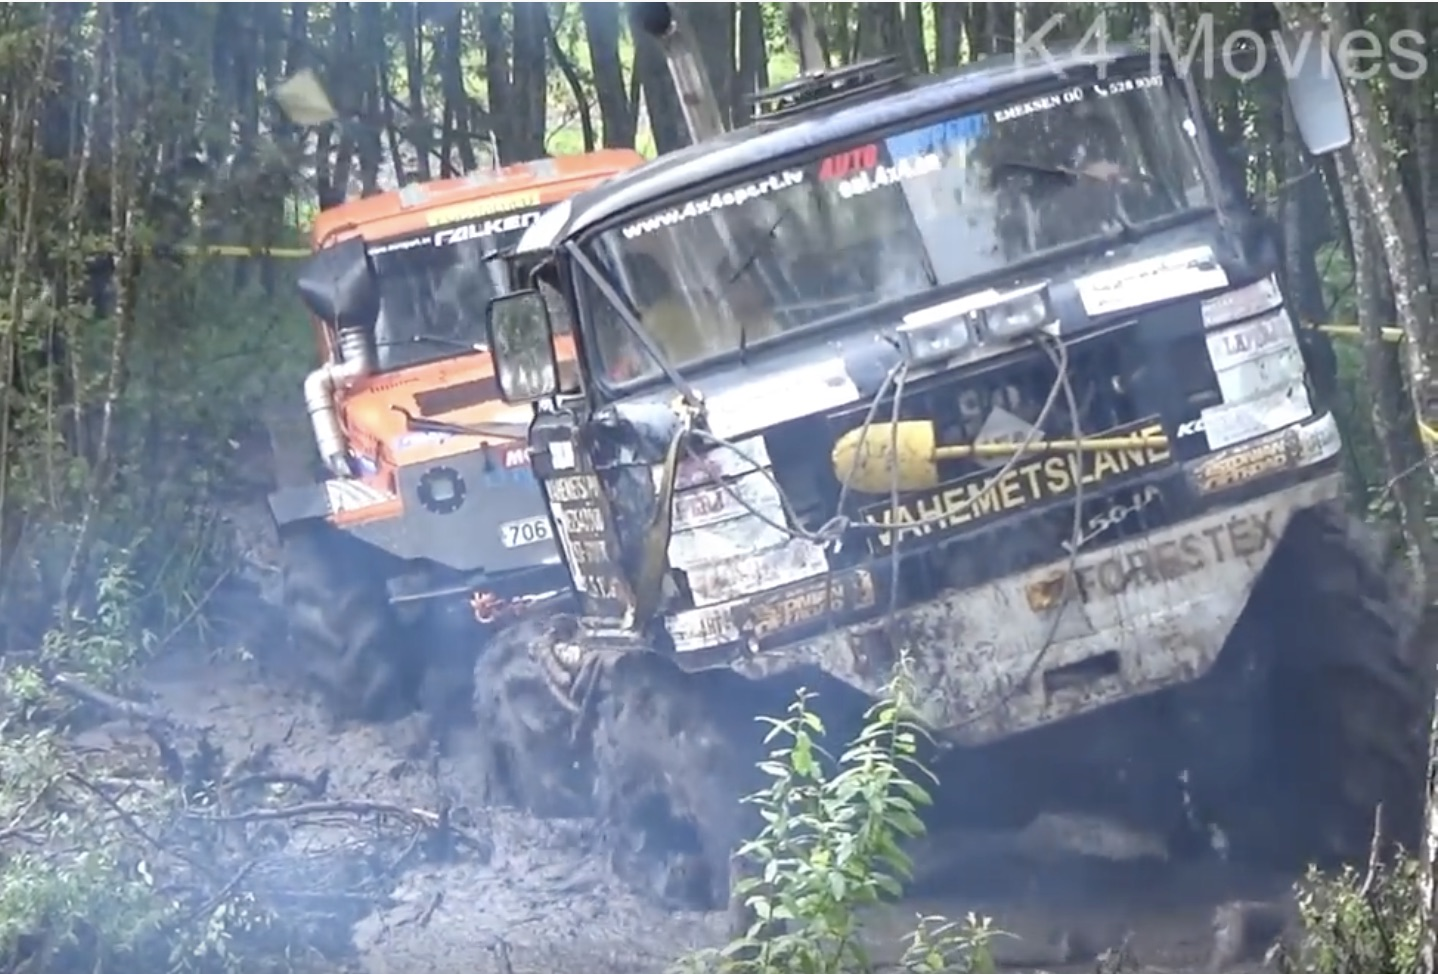 Spintires IRL: This Off-Road Mud Race In Estonia Is An Absolute Slogfest!